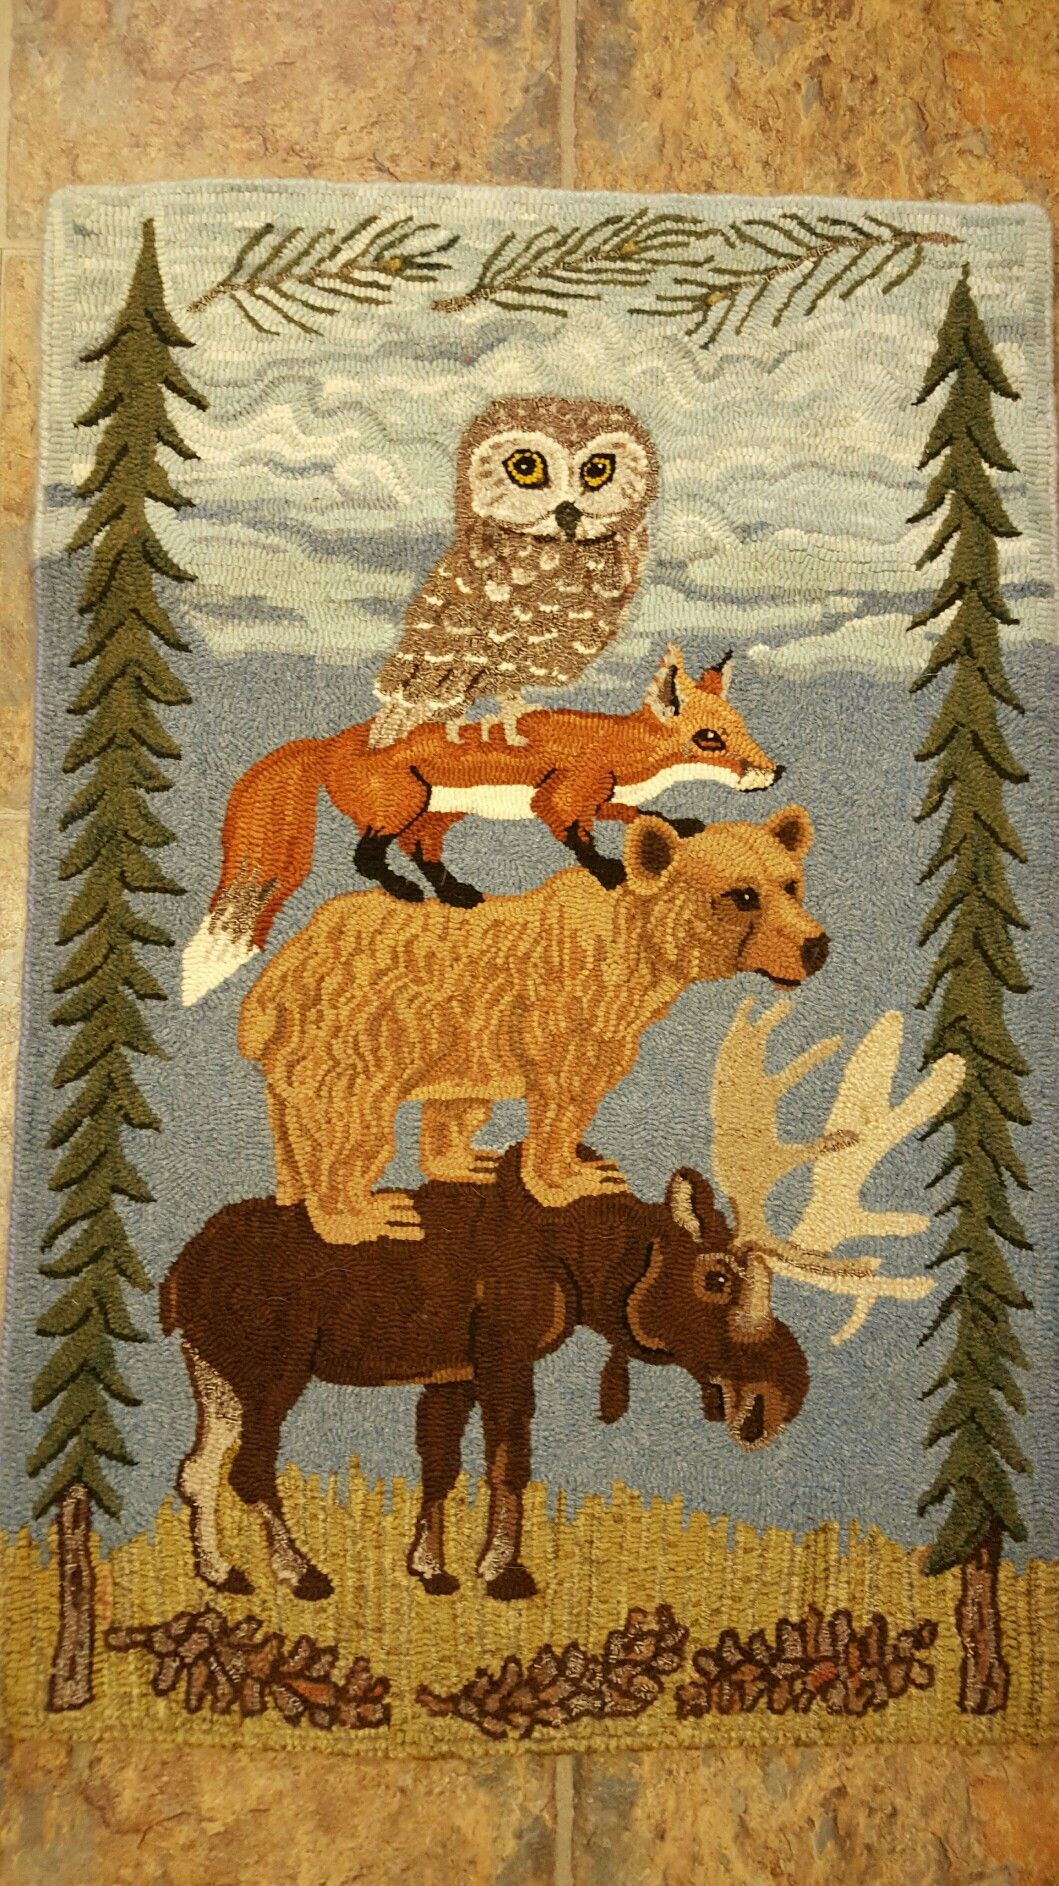 Into The Woods Designed By Bev Conway Hooked By Liz Gilbert Fox Hooked Rugs Primitive Rug Hooking Patterns Rug Hooking Designs